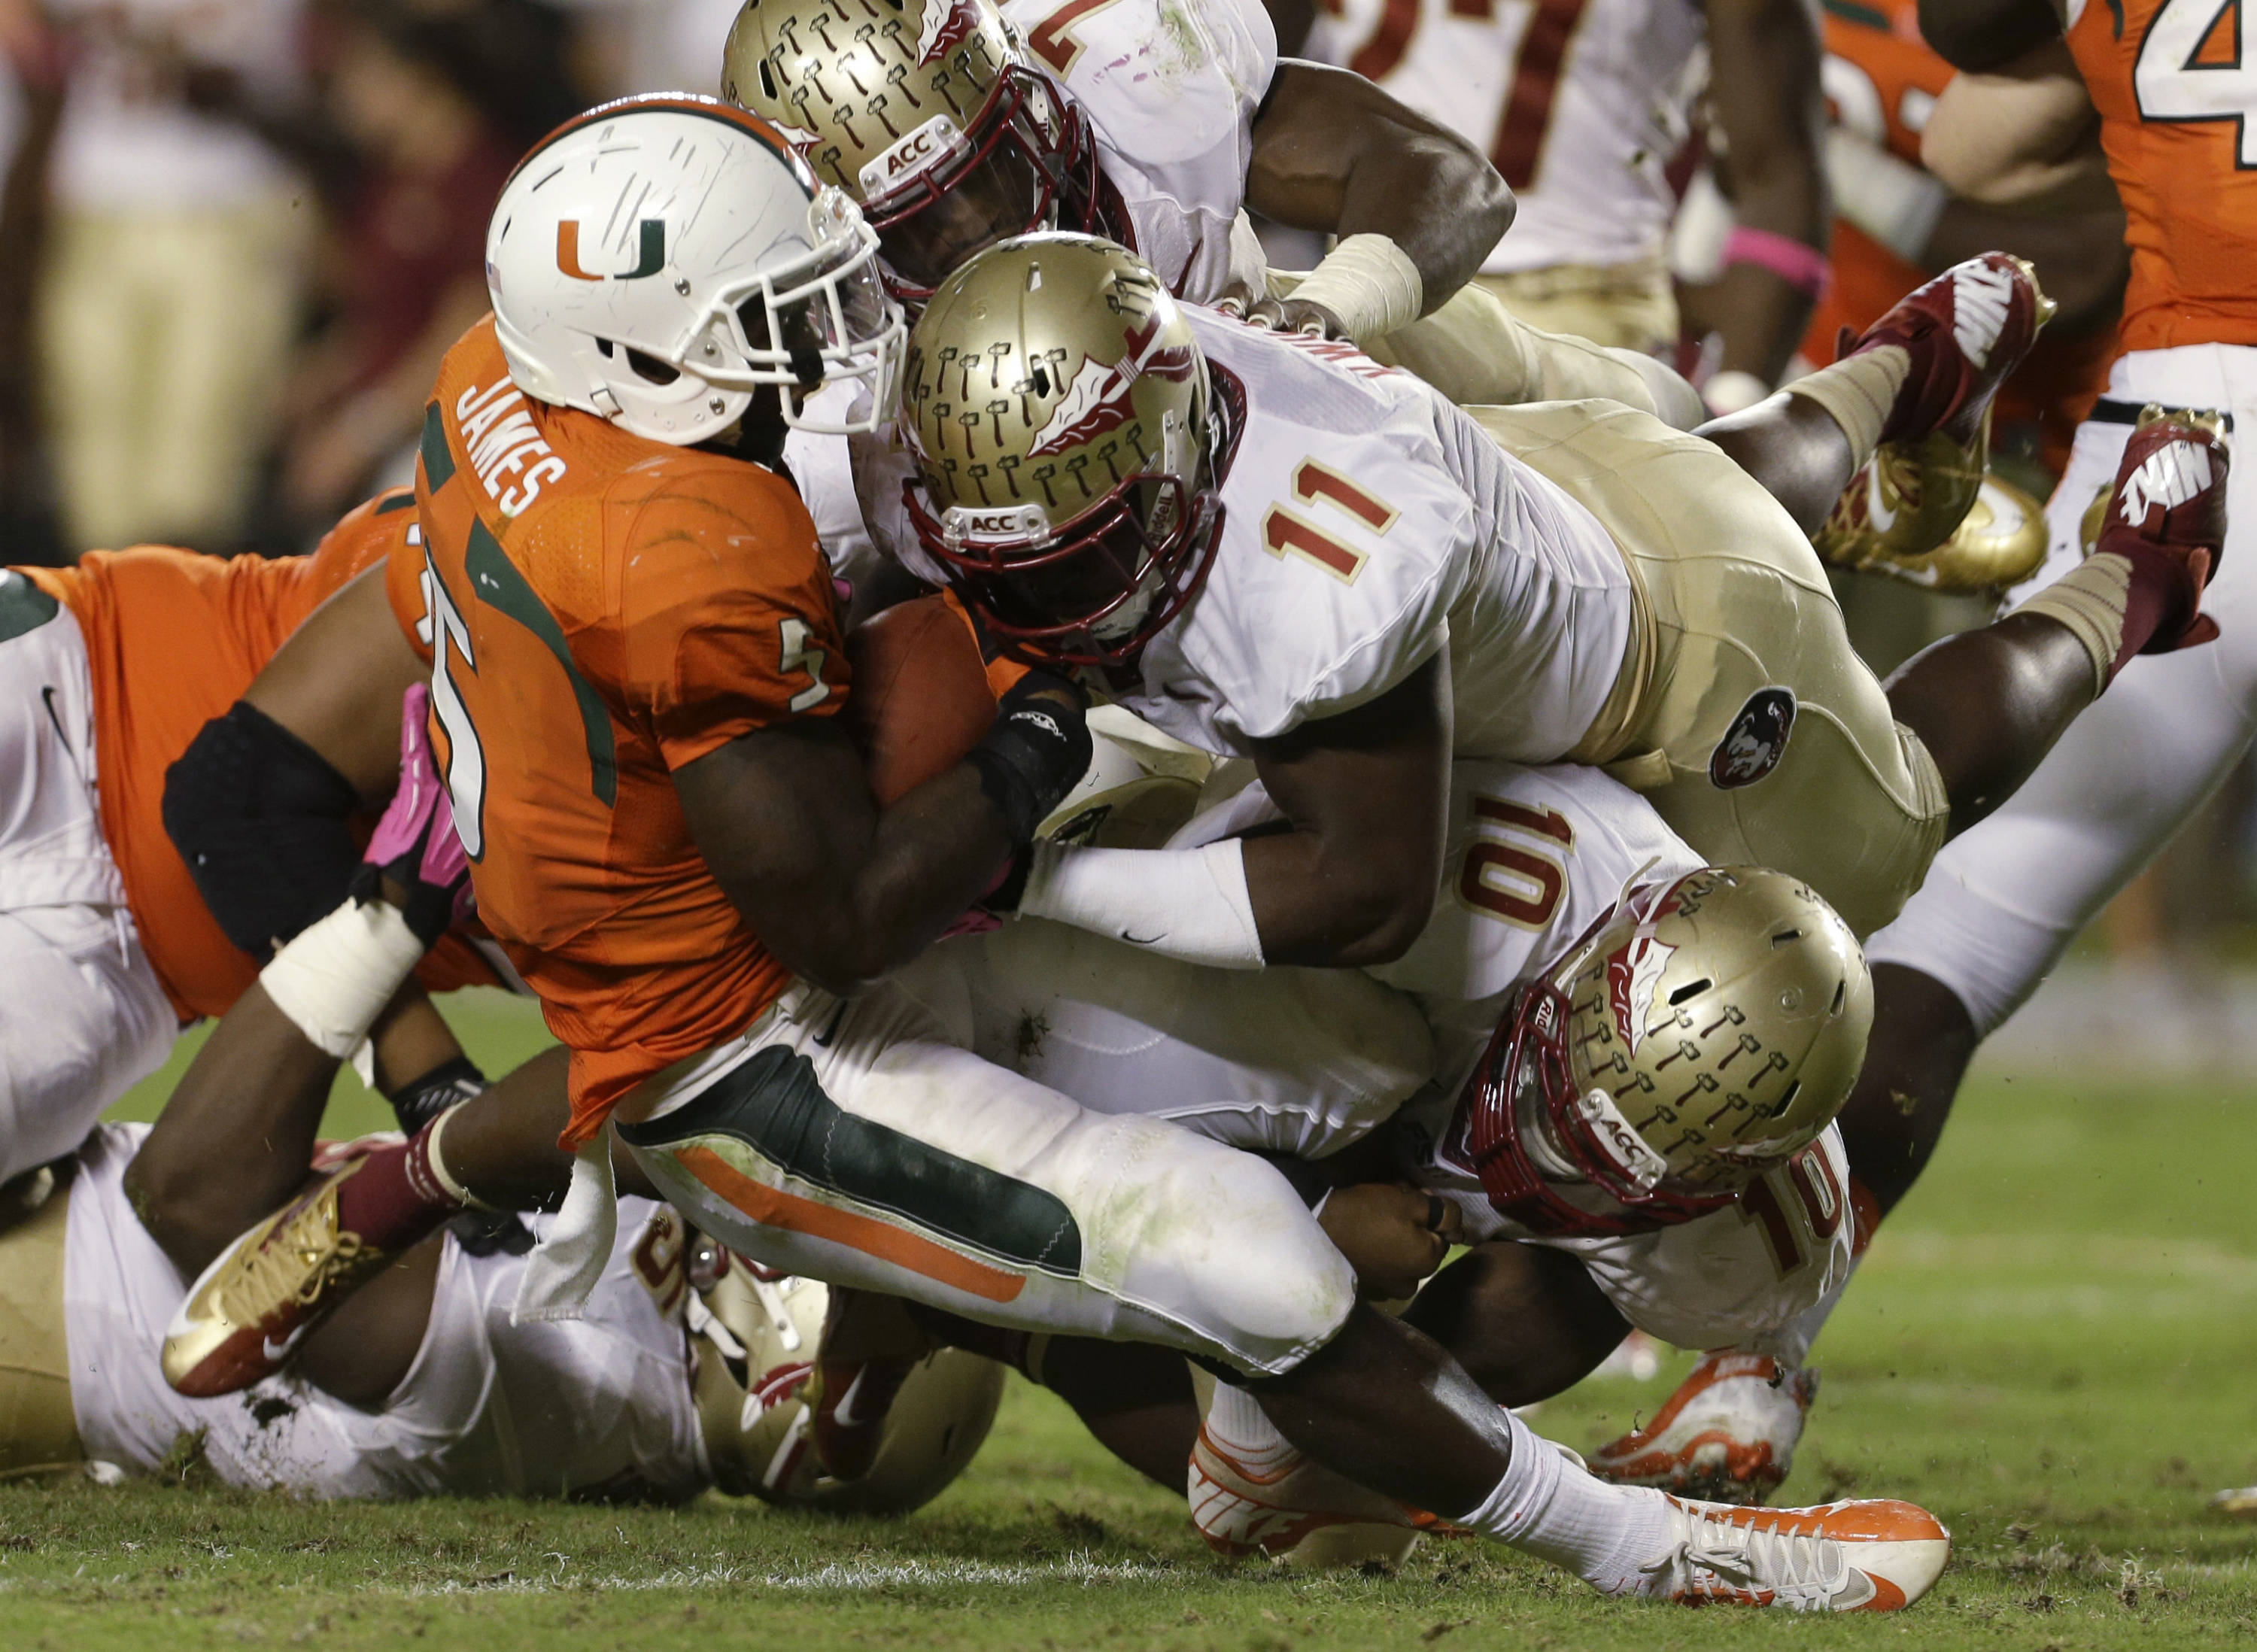 Miami running back Mike James (5) is tackled by Florida State linebackers Vince Williams (11) and Nick Moody (10) during the second half of an NCAA college football game Saturday, Oct. 20, 2012, in Miami. (AP Photo/Lynne Sladky)